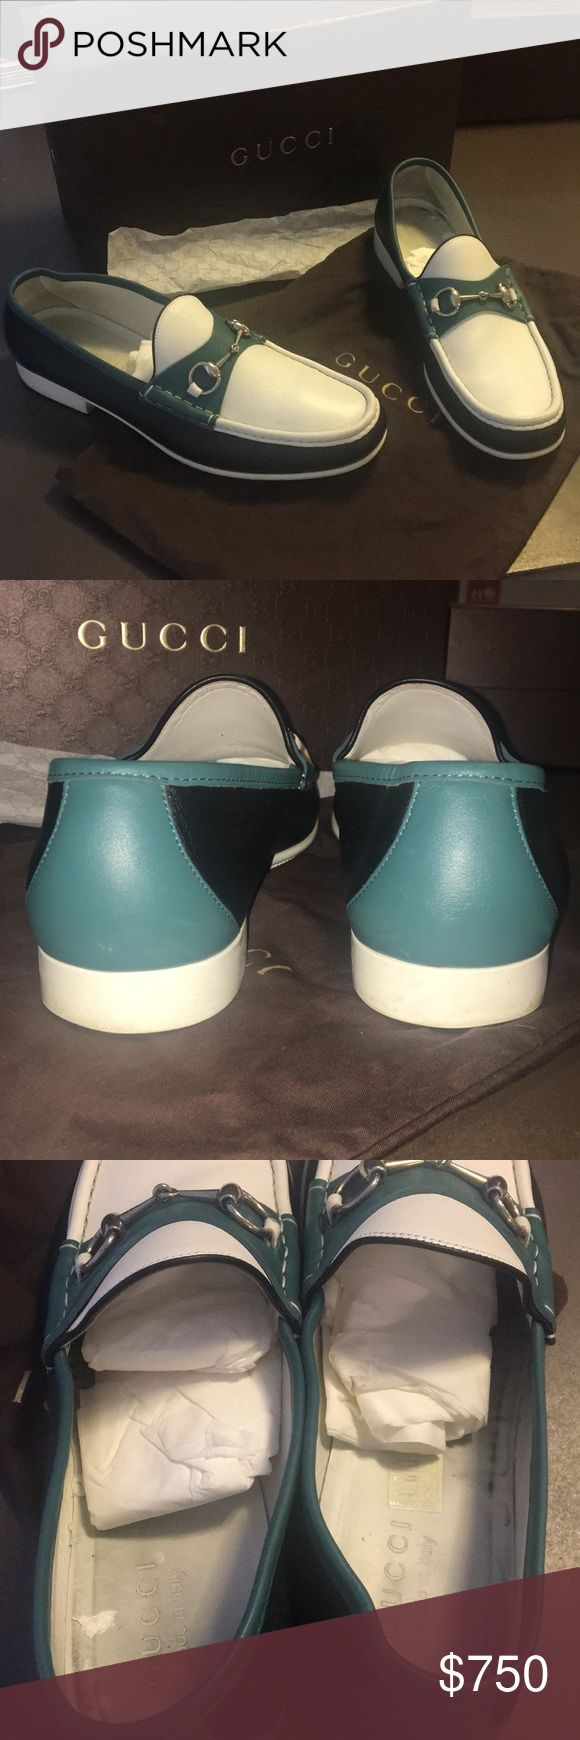 💯 Authentic Men's Gucci leather boat shoes *12 Men's authentic Gucci leather horse bit boat shoes. White with dark green & light green leather. Silver horse bit. Worn 3 times. Excellent used condition. With the exception of the 2 marks on the leather near the horse bit in last photo, The shoes are in pristine condition.  Comes with box, Gucci tissue paper & dust bag.  Size: 11 Italian= size 12 US Gucci Shoes Boat Shoes